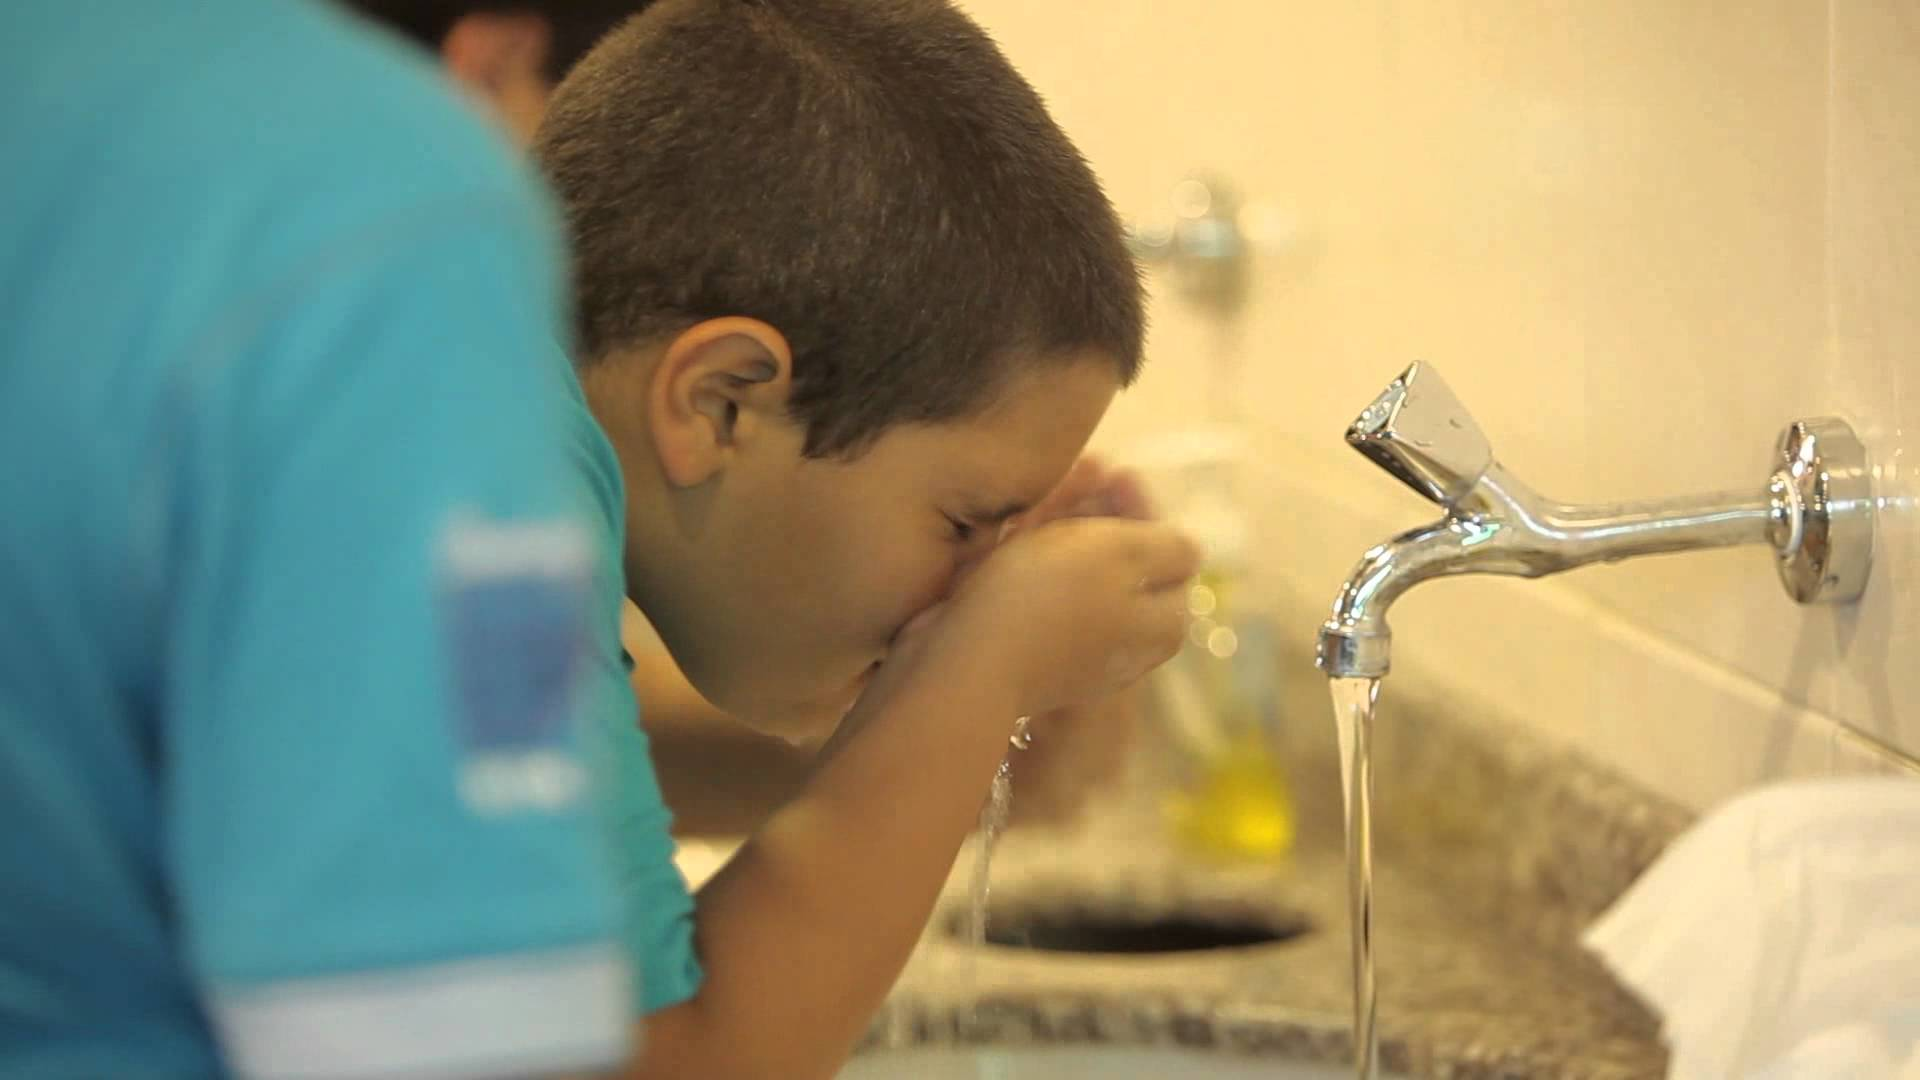 a child rinse his nose while performing ablution.